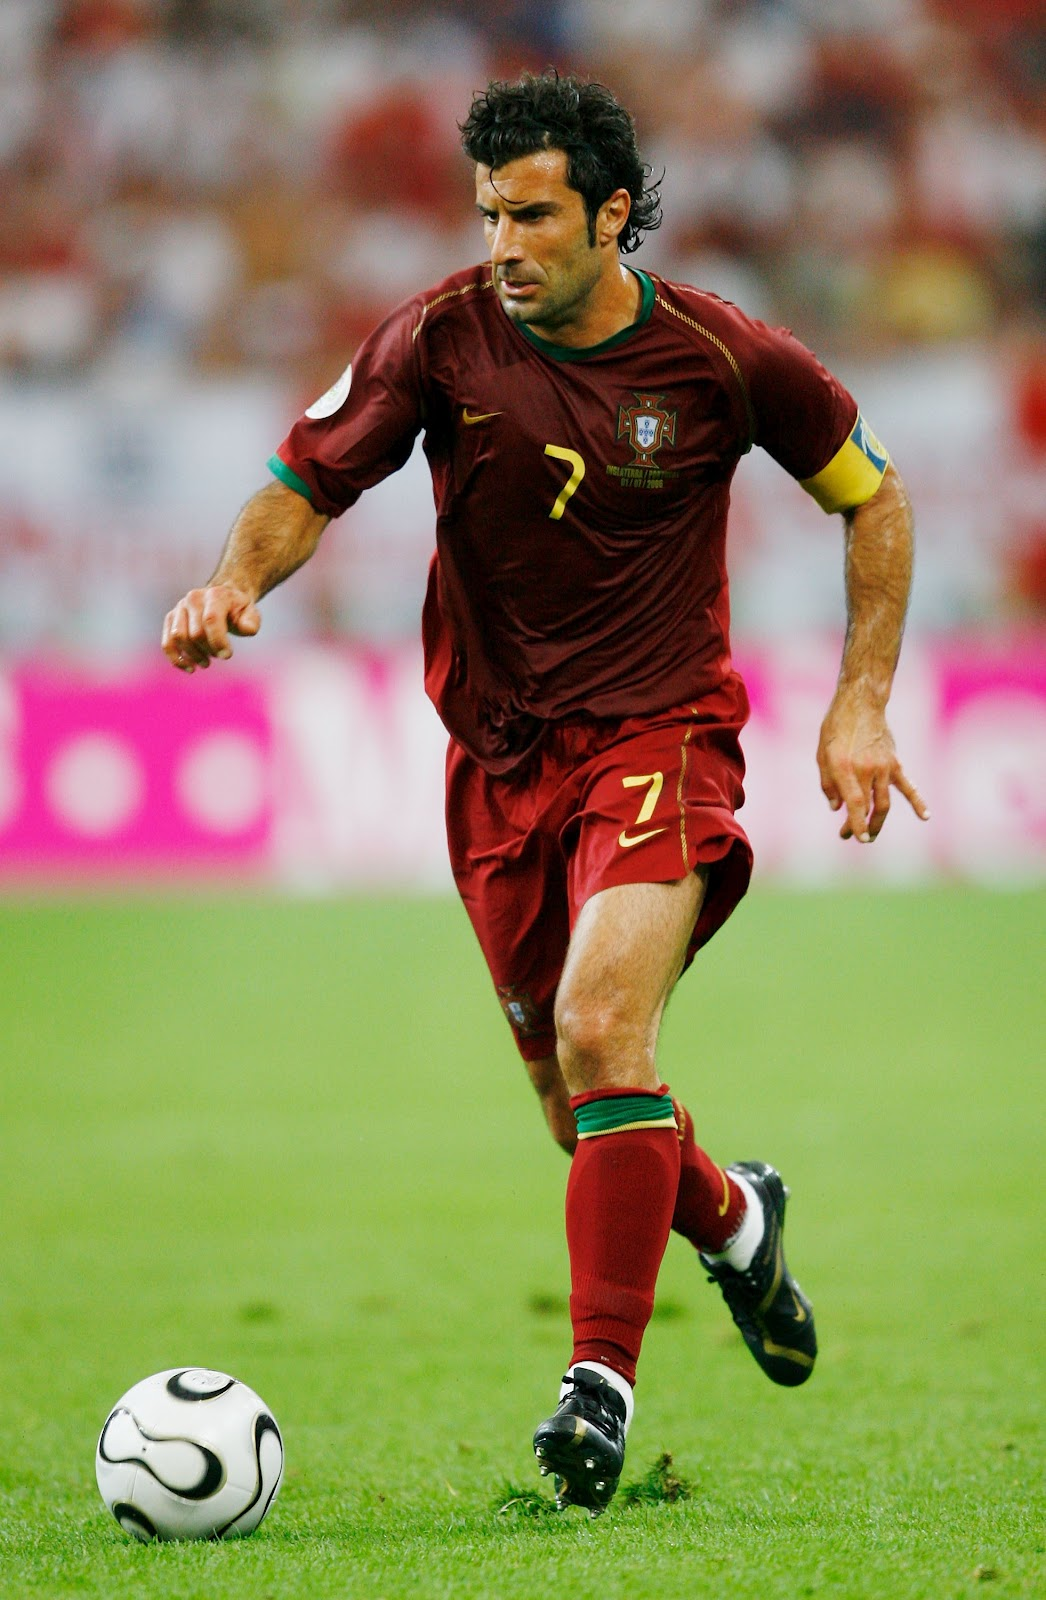 Luis Figo Wallpapers 30 WallpapersExpert Journal 1046x1600